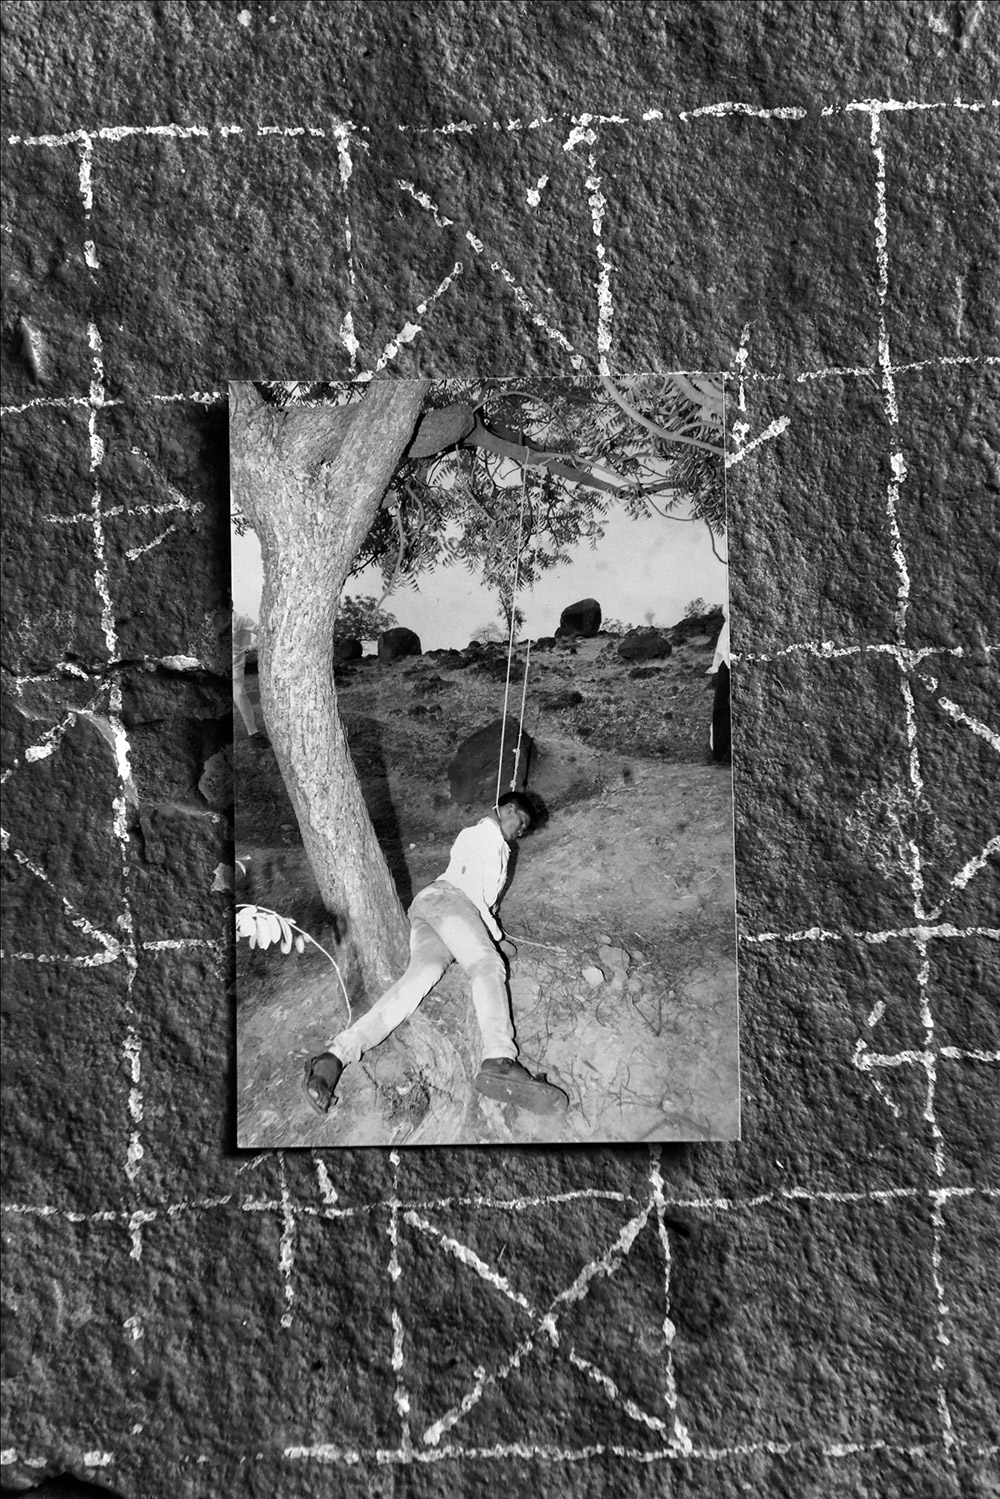 "Nitin Aage, a 17-year-old Mahar boy from Kharda village in Jamkhed, was brutally killed and hanged from a tree for talking to a girl from an upper caste community. Three men, including the girl's brother, from the same upper caste community suspected that Nitin had an affair with her and constantly harassed him in school. On April 28, 2014, the perpetrators allegedly beat him in front of the school, but the teachers and principal, instead of intervening, told them to take their matters outside school premises. The perpetrators, Aage's family claims, are roaming free as the cops failed to arrest them despite the repeated court warrants. They are shown ""absconding"" in police records, but Aage's family says one of them passes by their house even today."